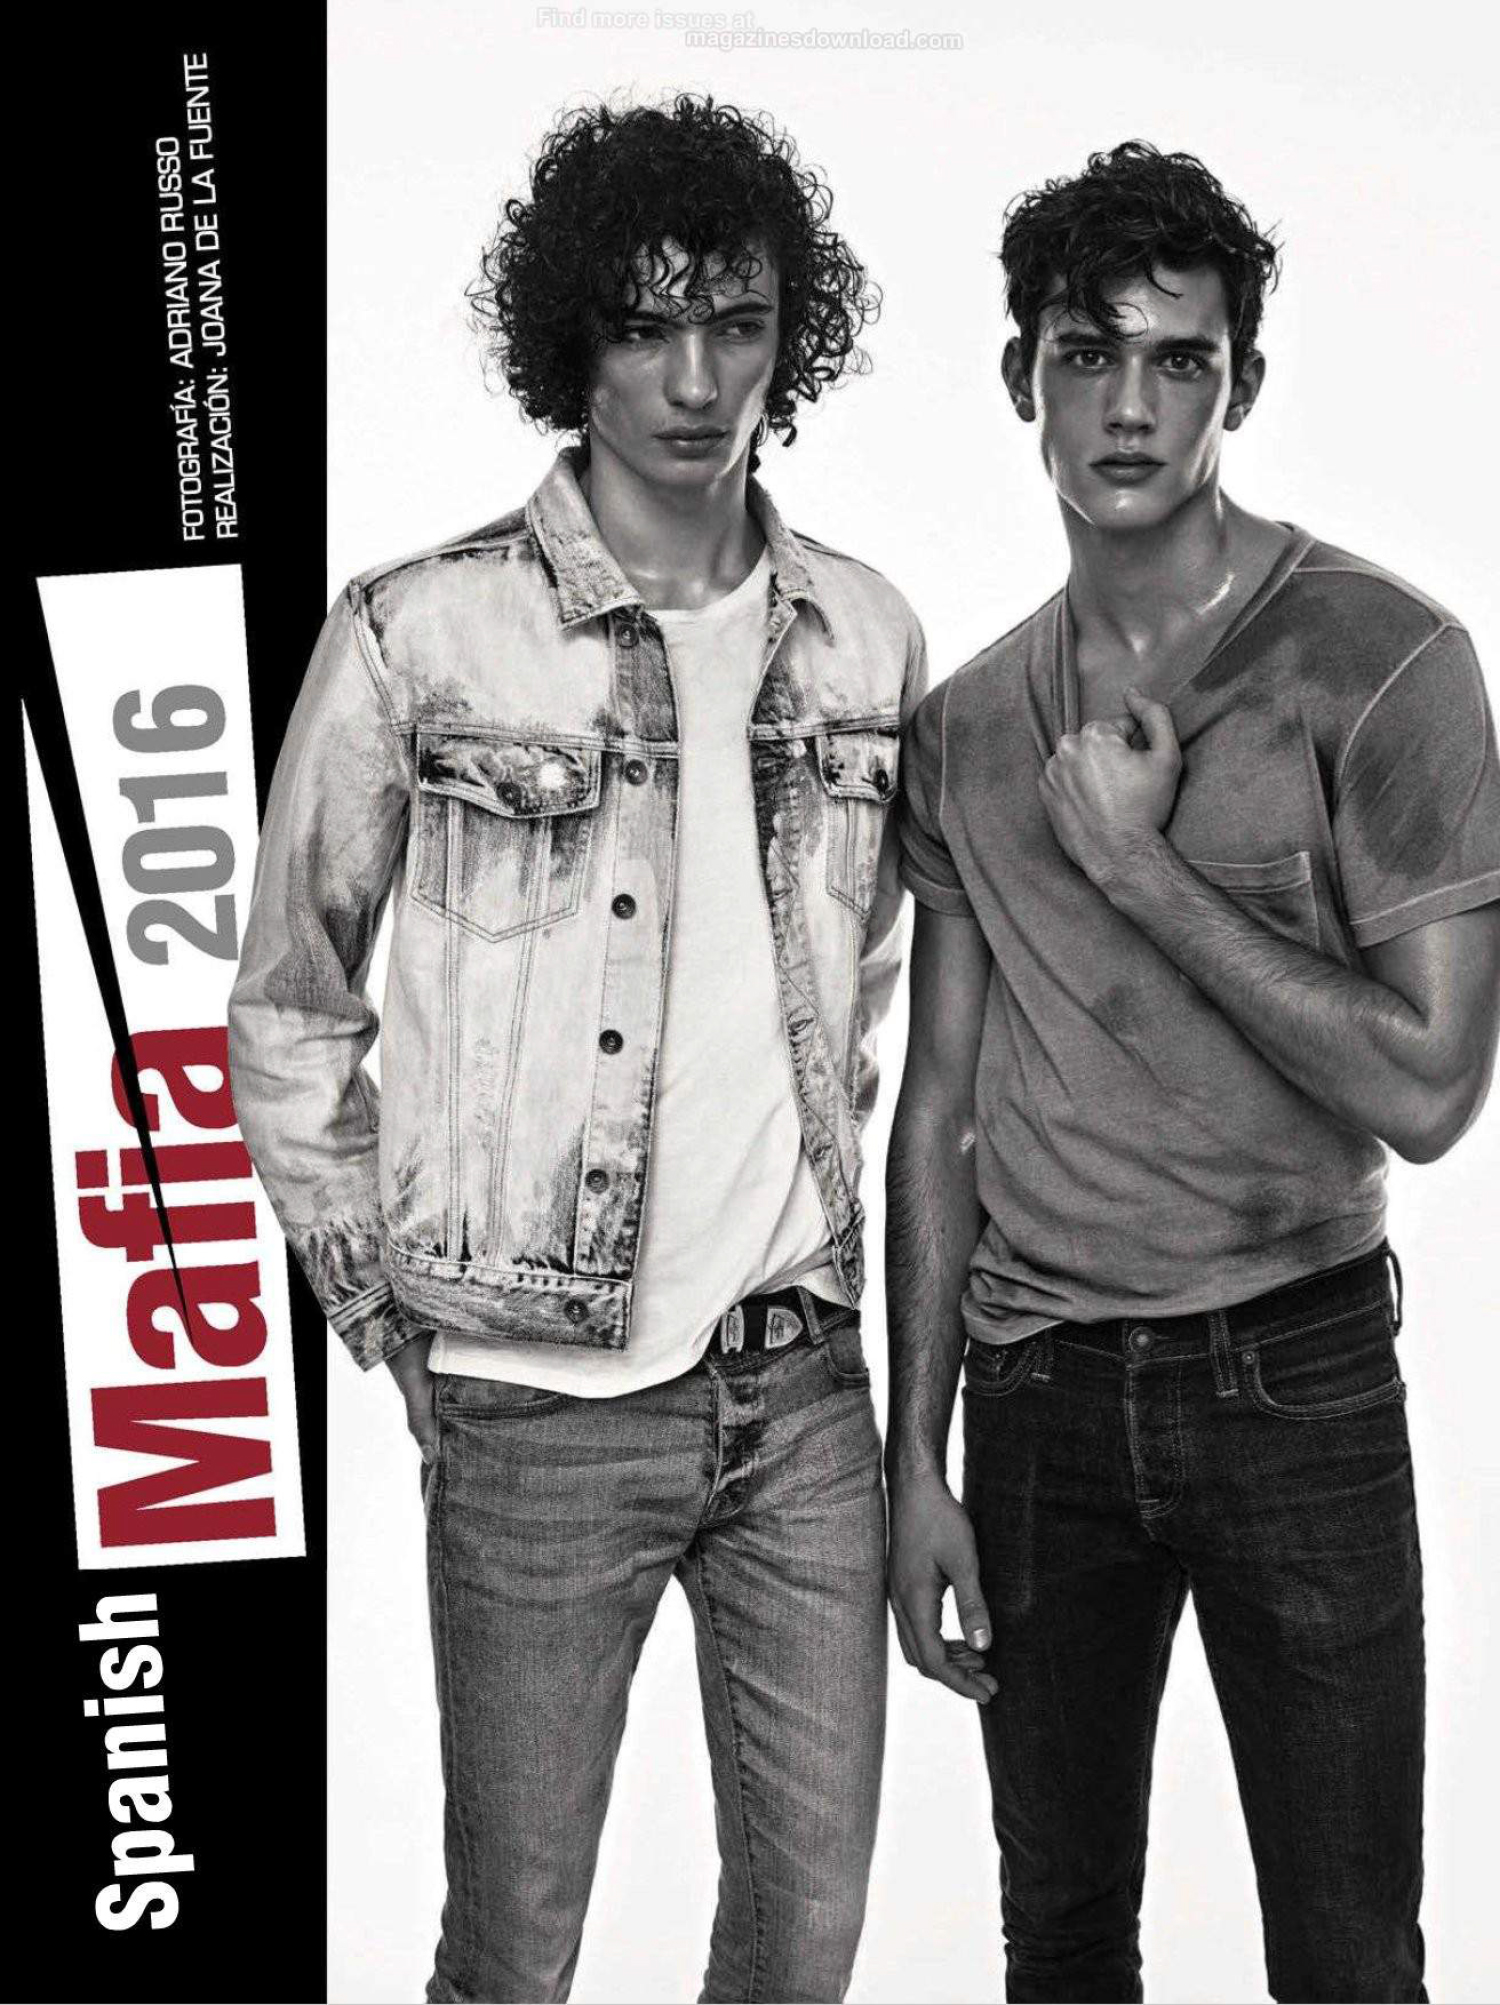 "GQ Spain presents ""Spanish Mafia 2016"" a work presented by Adriano Russo in the March Issue of this coming number. Starring by Spanish sensation: Adrian Cardoso, Dimytri Lebedyev, Xavier Serrano, Marçal Taberner, River Viiperi, Piero Mendez, Óscar Kindelan and Jaime Ferrandis all styled by talented Joana de la Fuente."